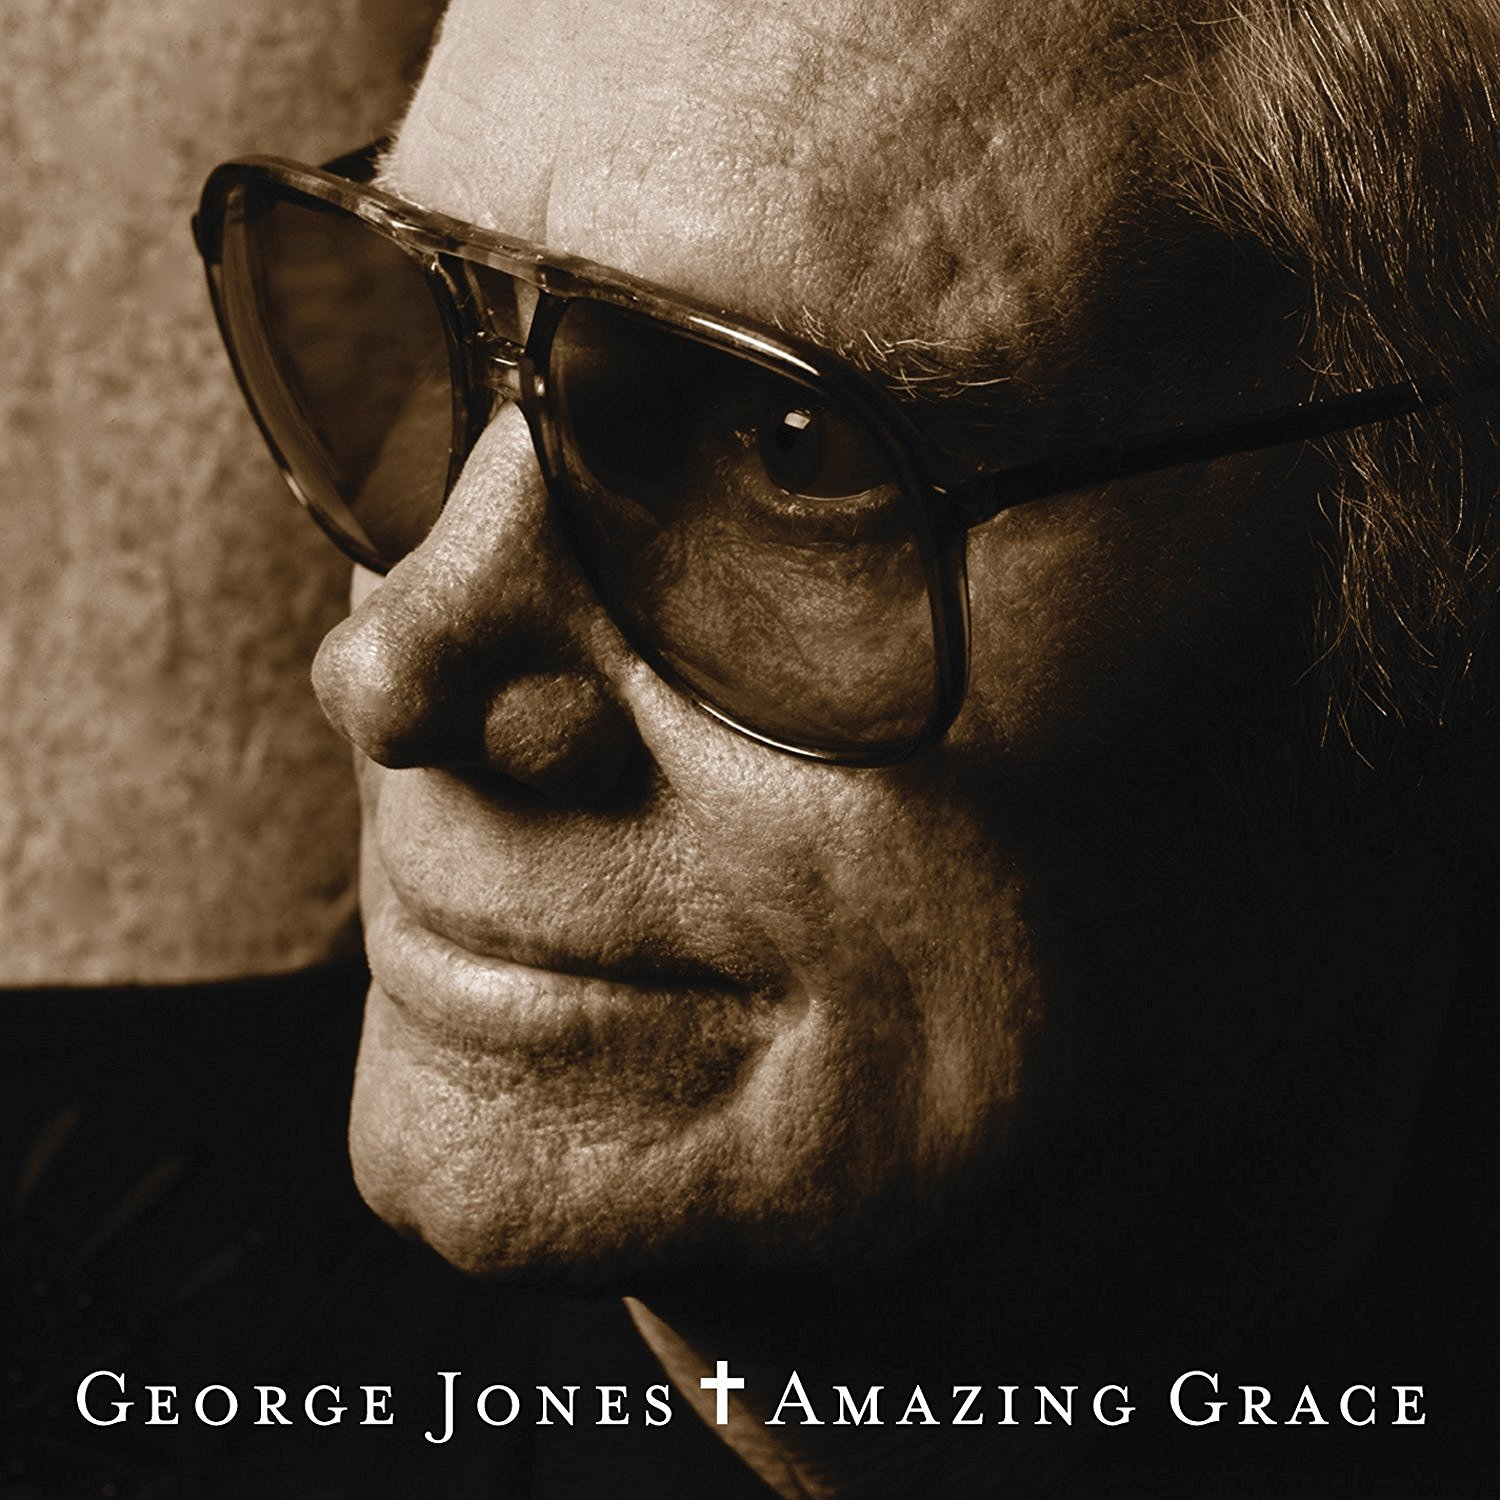 George Jones Amazing Grace album